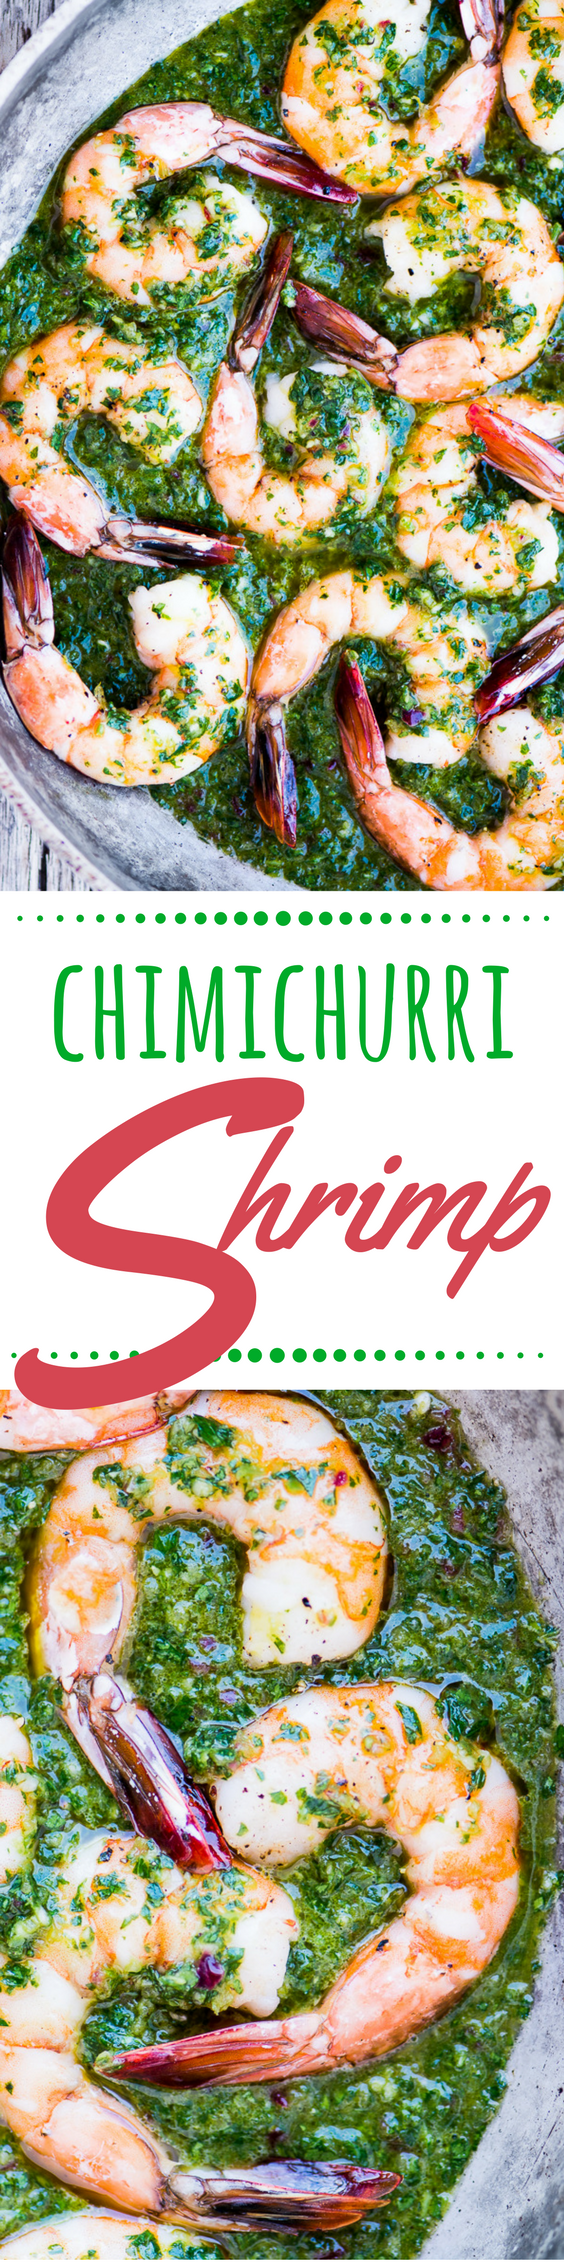 Chimichurri Shrimp ~ this can be a low carb and paleo friendly appetizer, or a comforting 30-minute meal when you pair it with pasta, couscous, or warm toasty bread. #seafood #bestshrimp #easyshrimp #shrimprecipe #30minutemeal #meatlessmonday #lowcardshrimp #weightwatchers #lowcalorie #deliciousshrimp